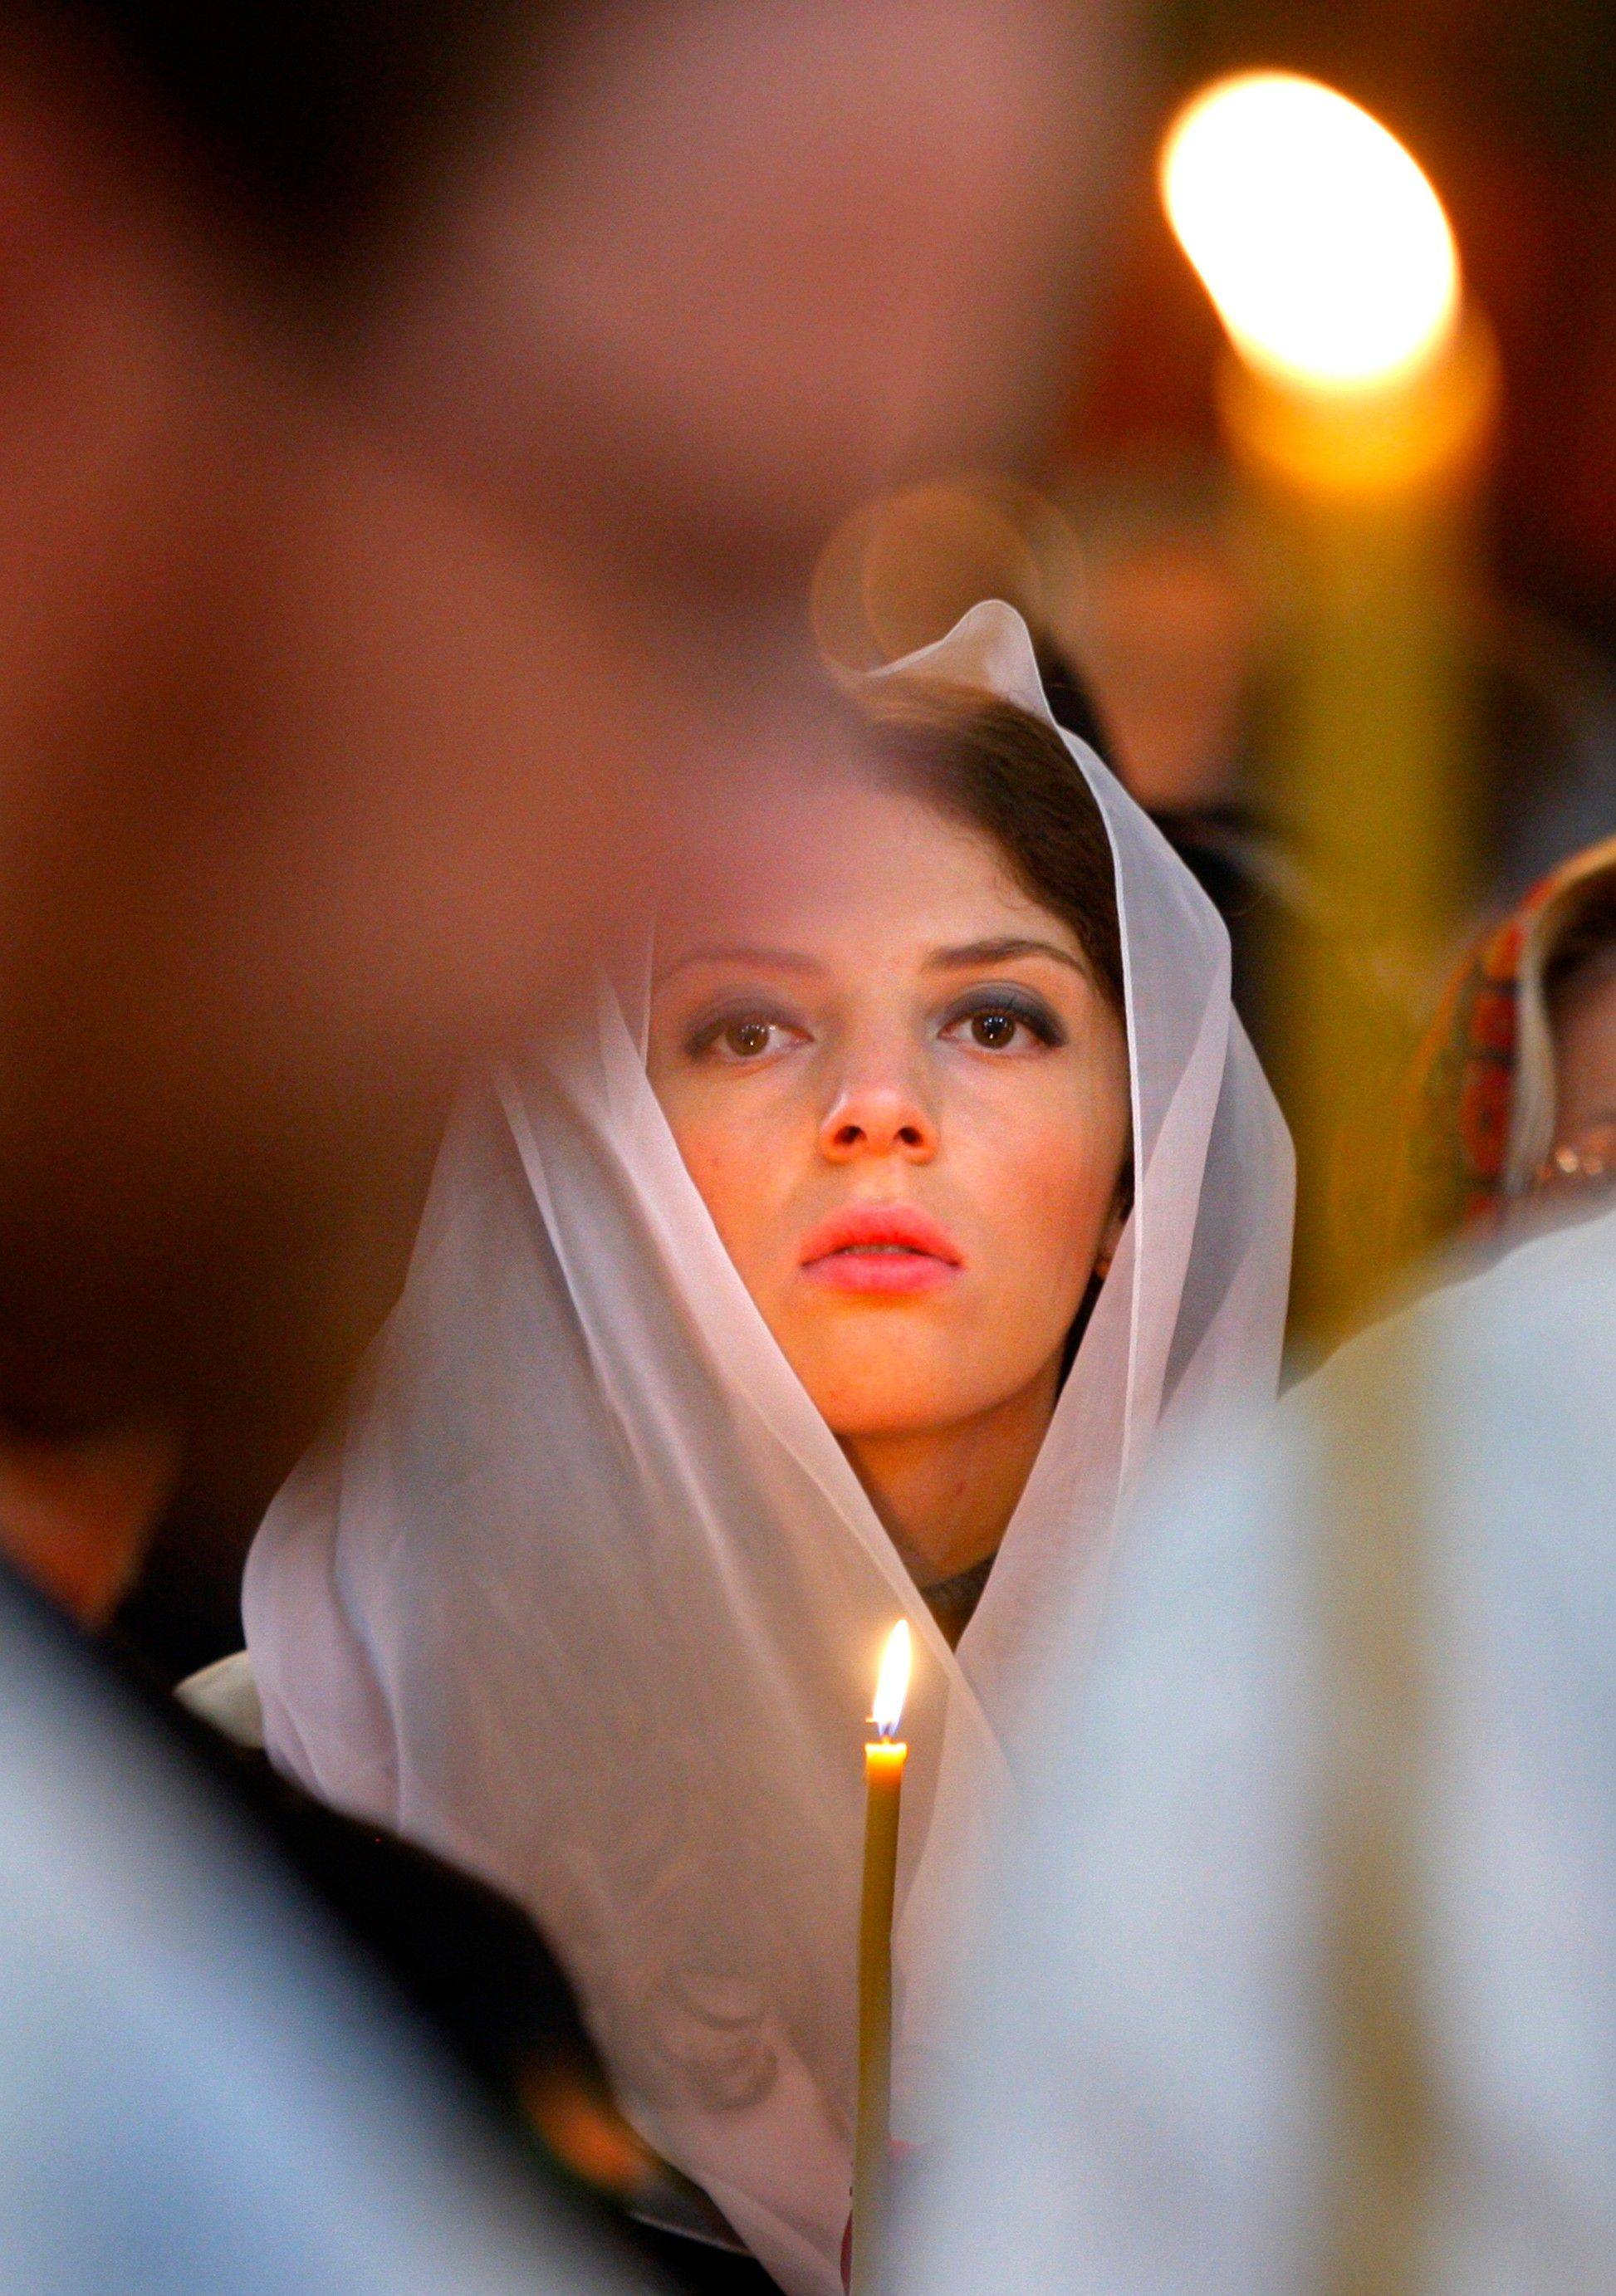 A woman holds a candle during an Orthodox service at St. Catherine in remembrance of the victims of the Sept. 11, 2001 terror attacks, Moscow, Sunday, Sept. 11, 2011. Sunday marks the tenth anniversary of the attacks of September 11, 2001.